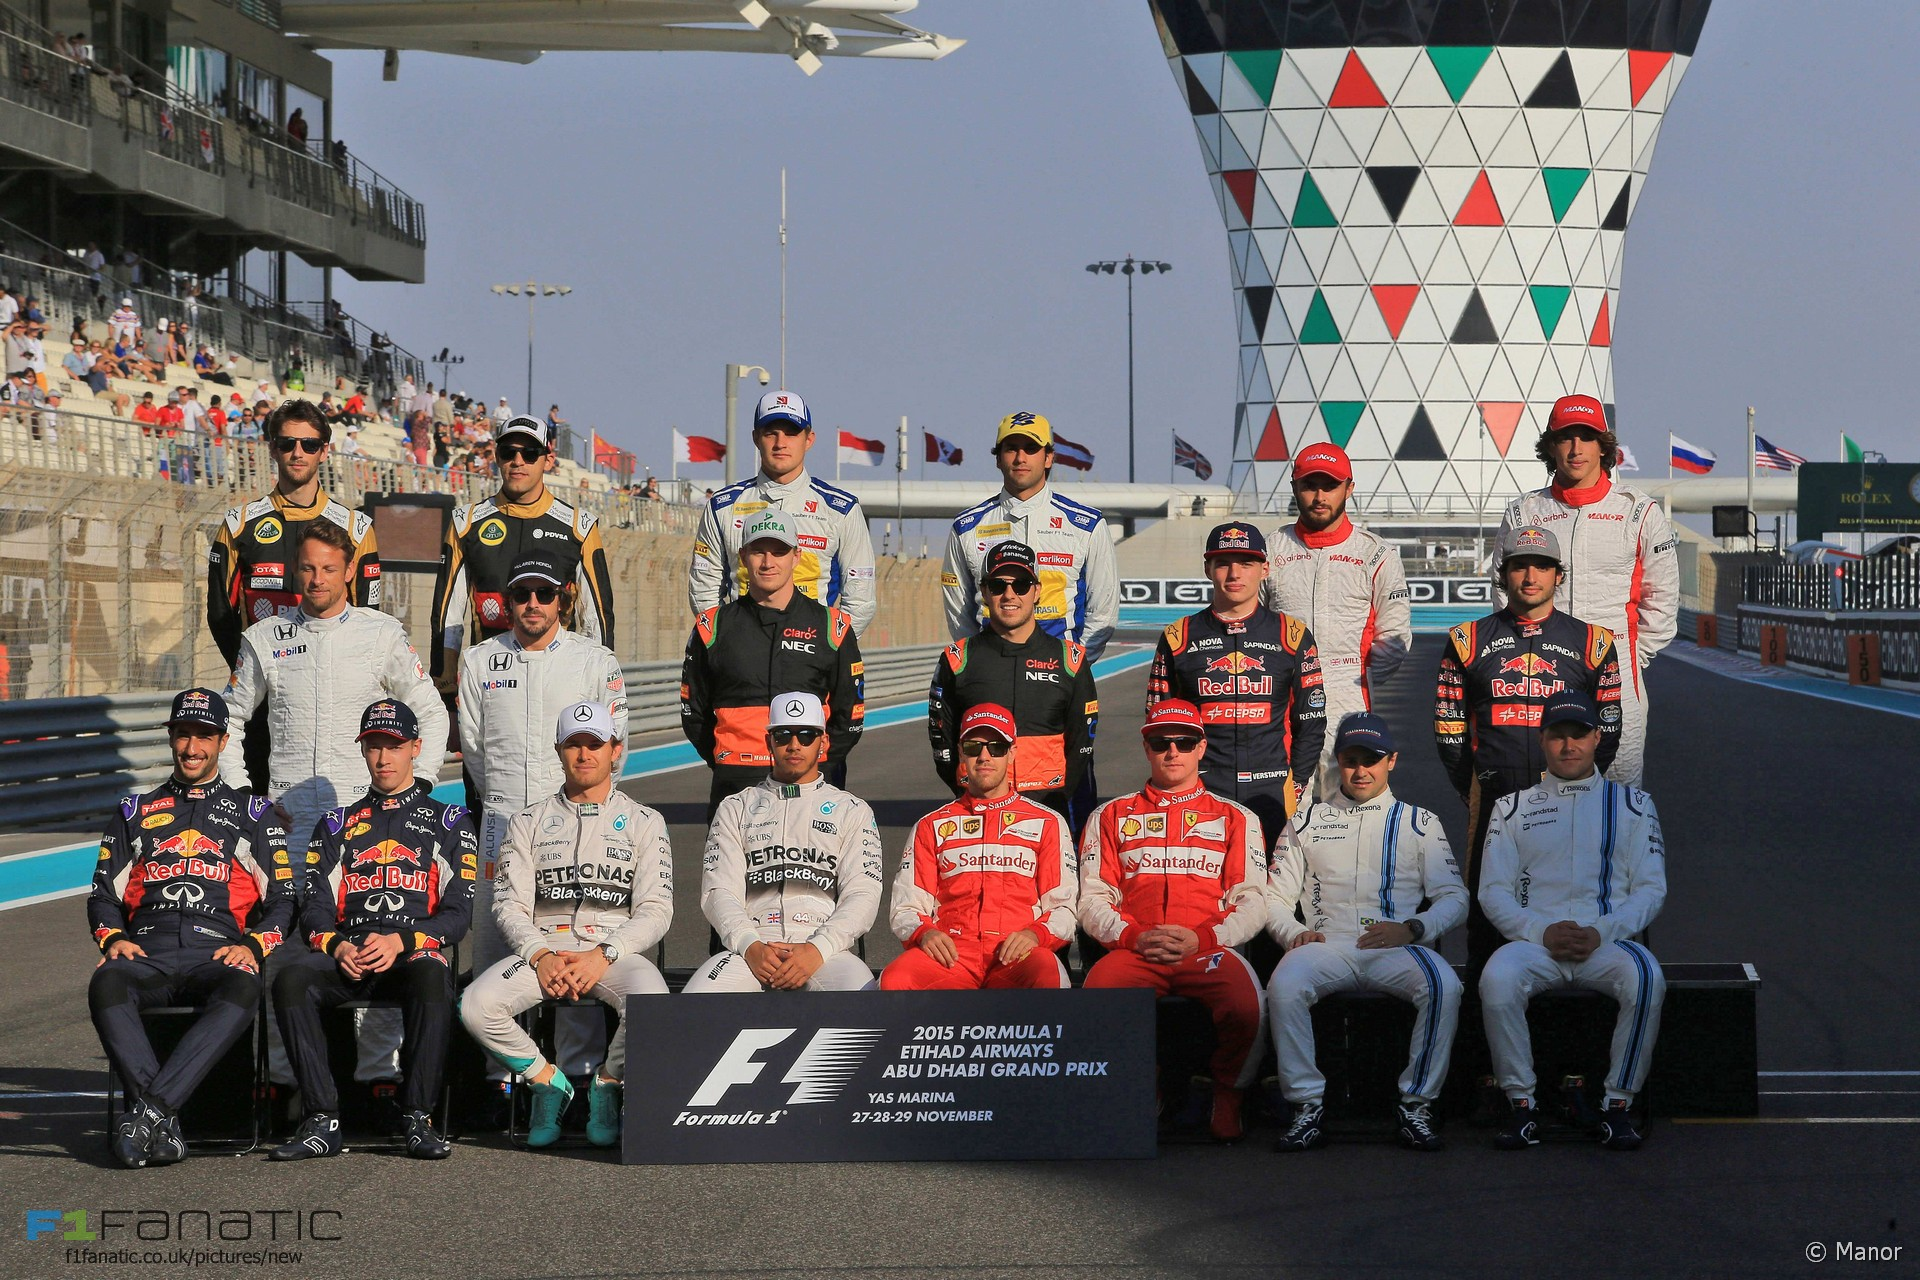 drivers 39 group photographs f1 fanatic. Black Bedroom Furniture Sets. Home Design Ideas